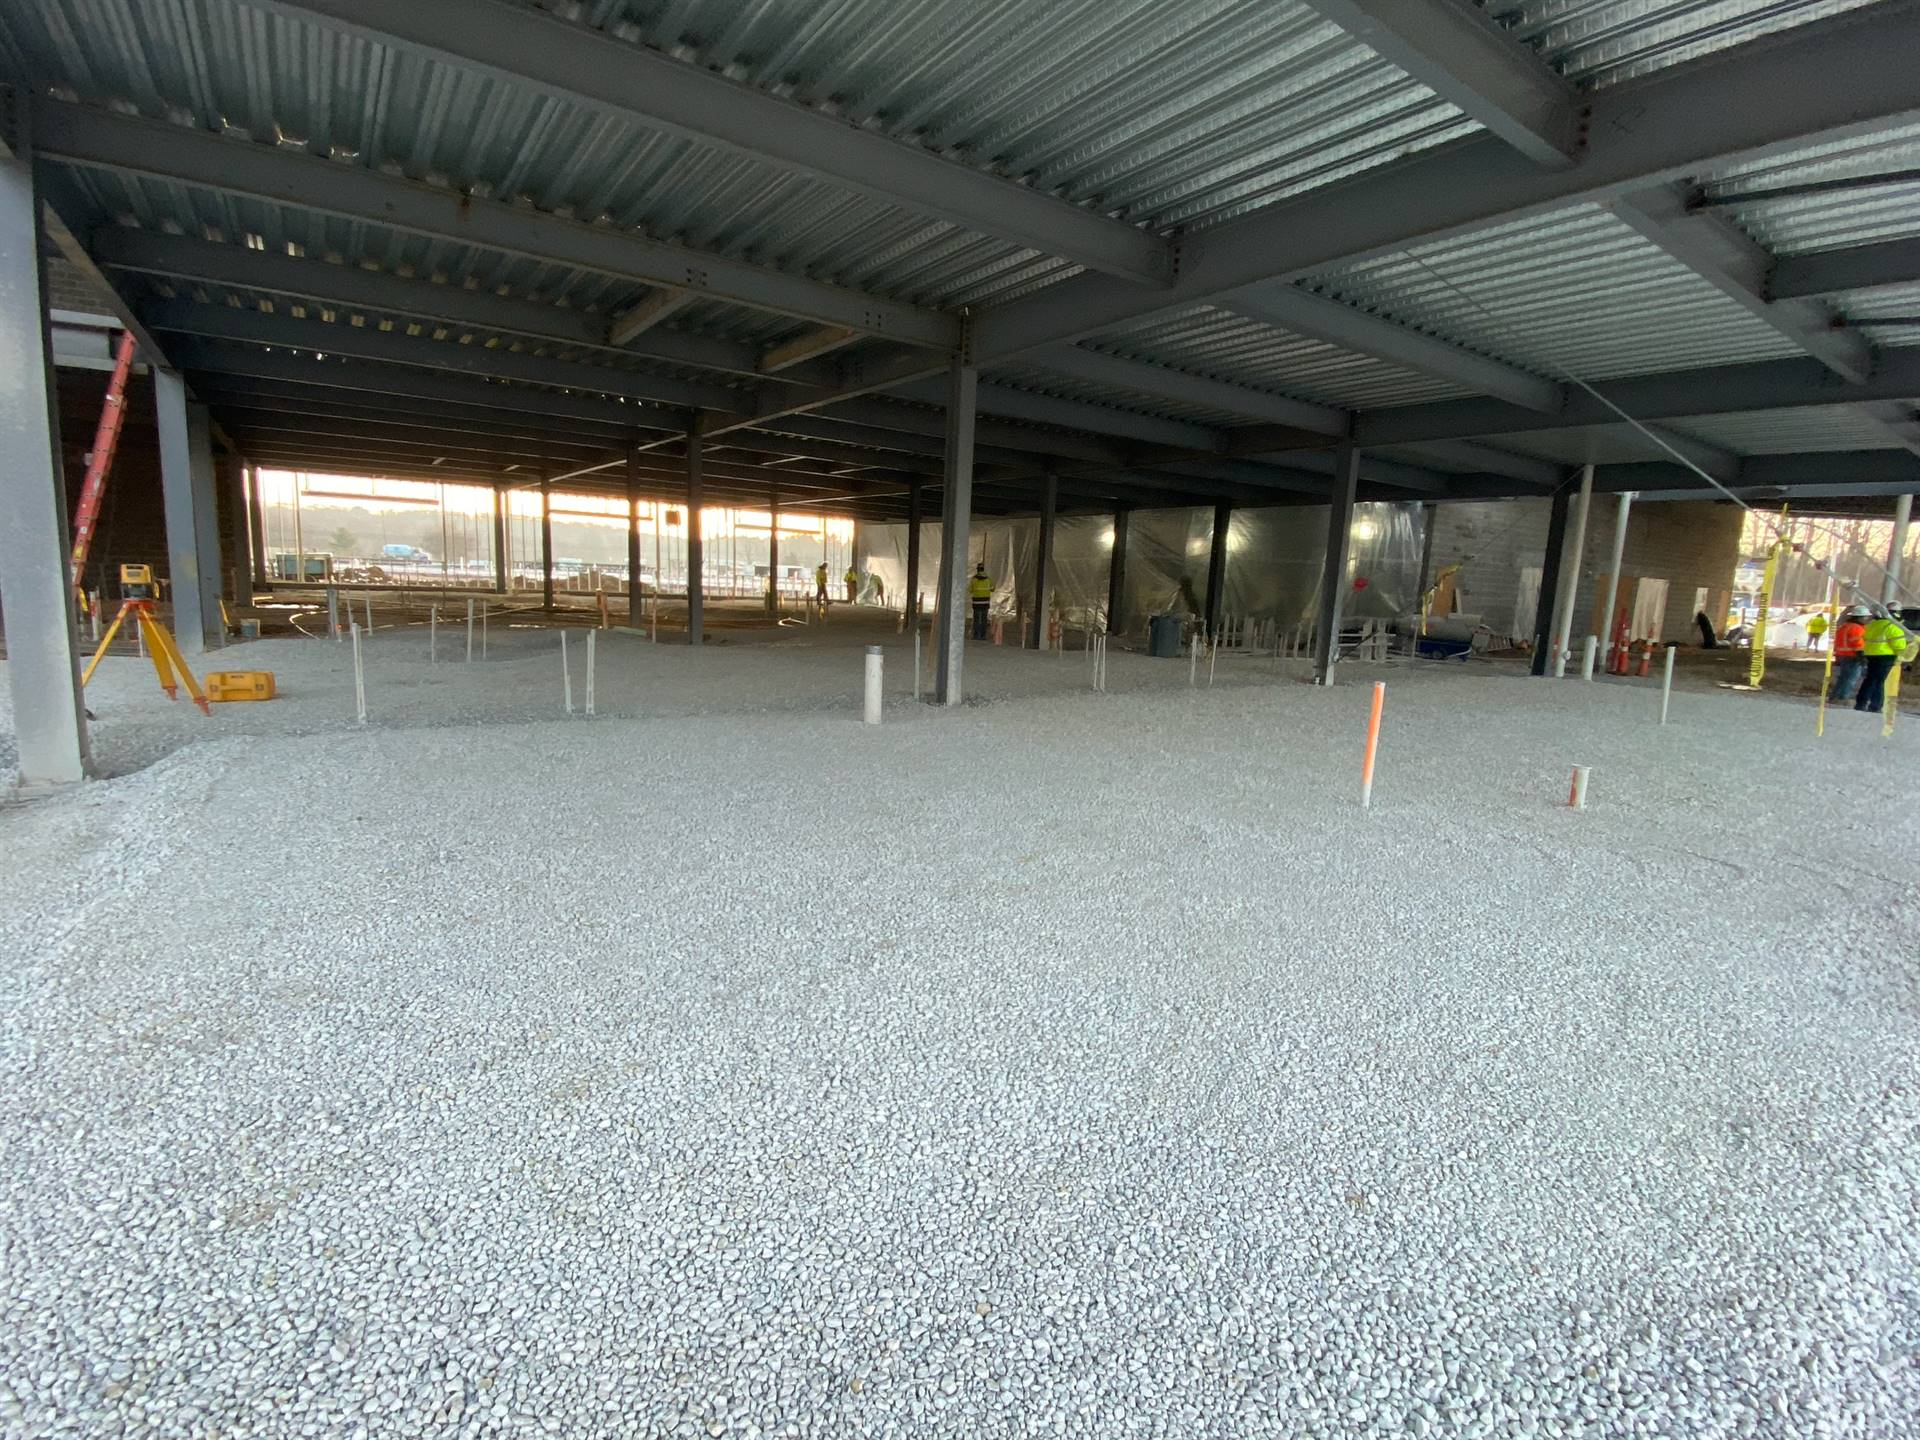 1st and 2nd grade areas stoned as well as gym. Once area is enclosed and heated it will be poured.